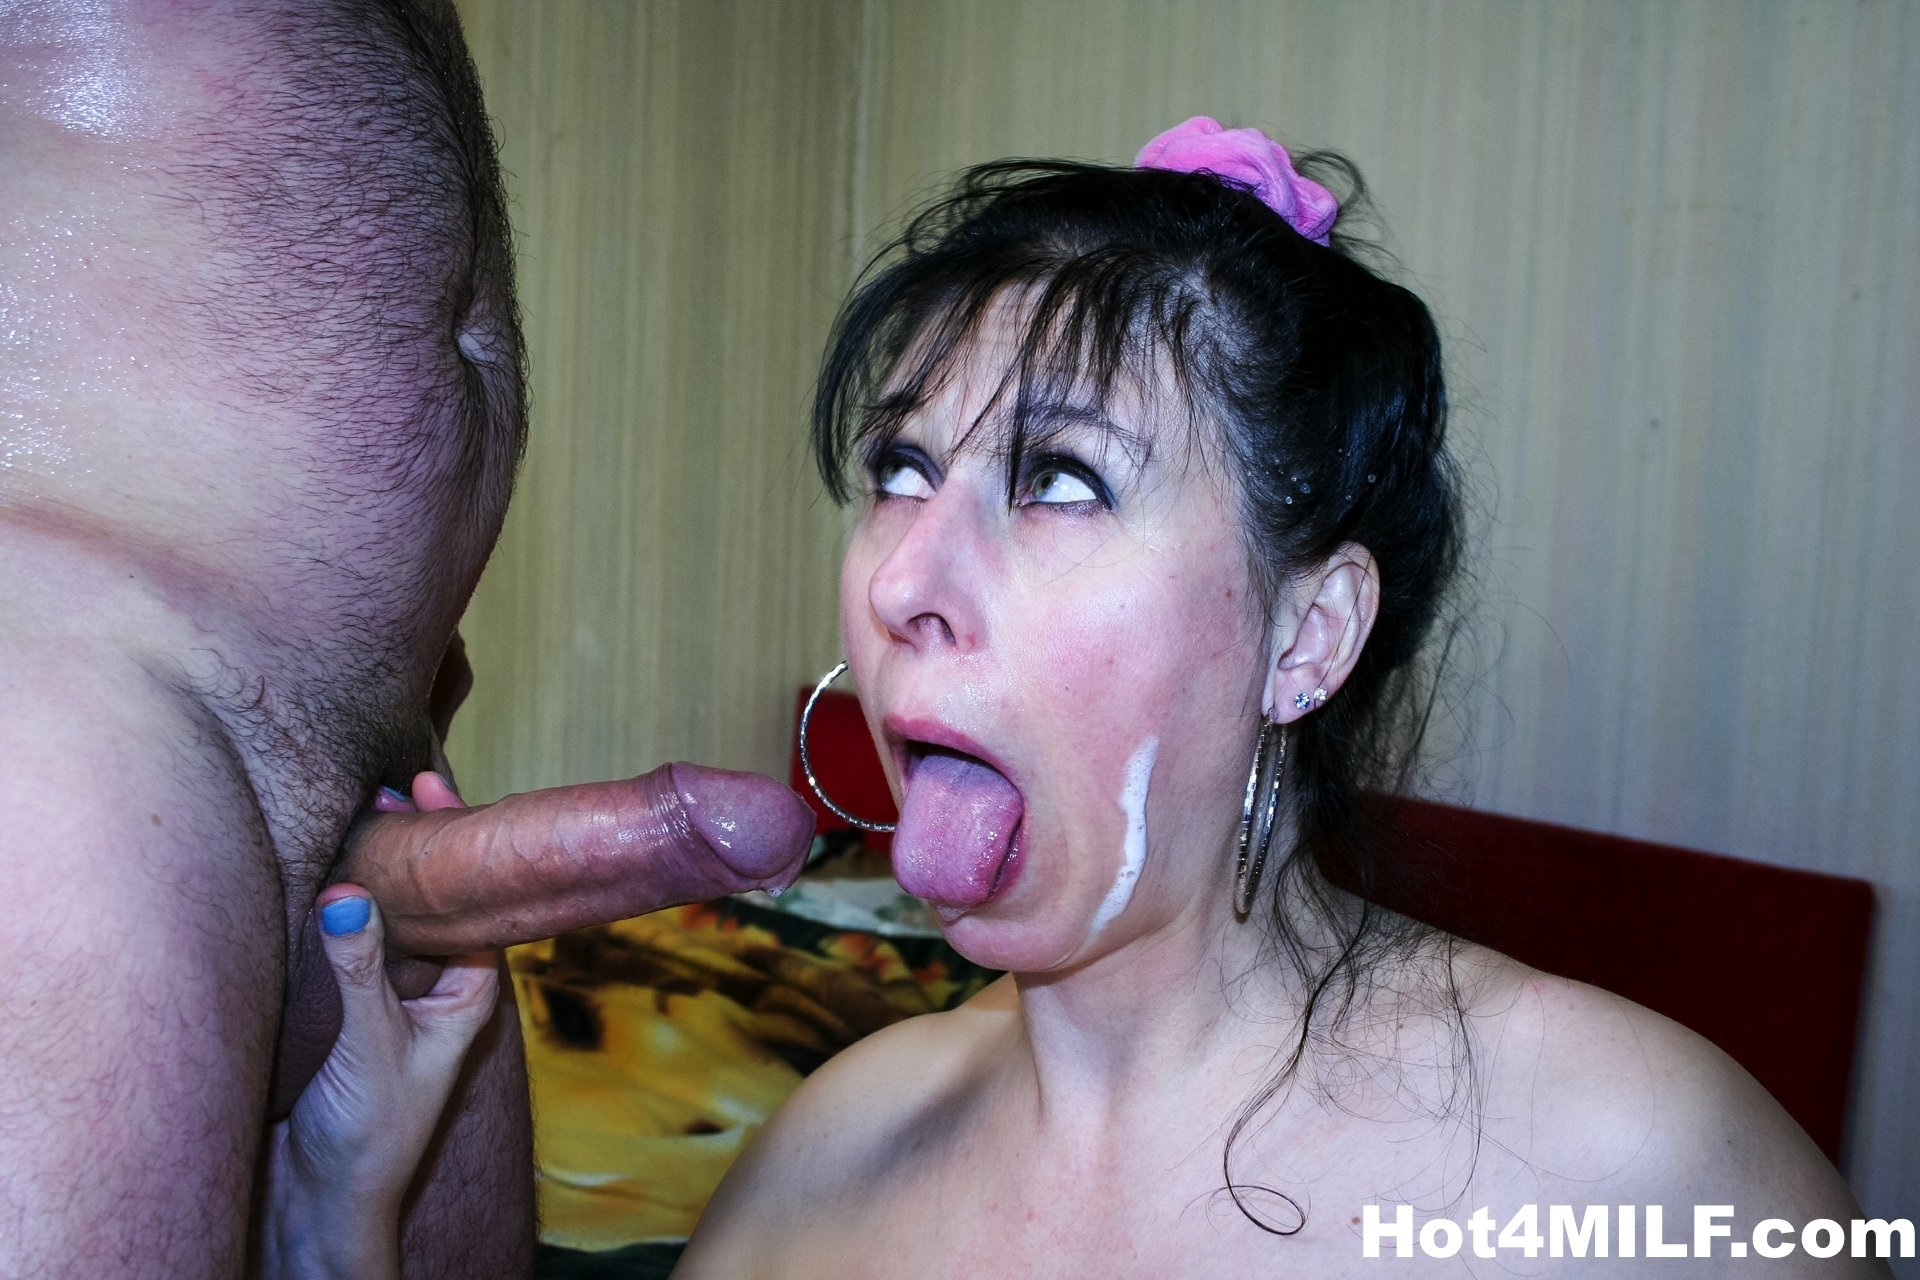 old milf porn pics there